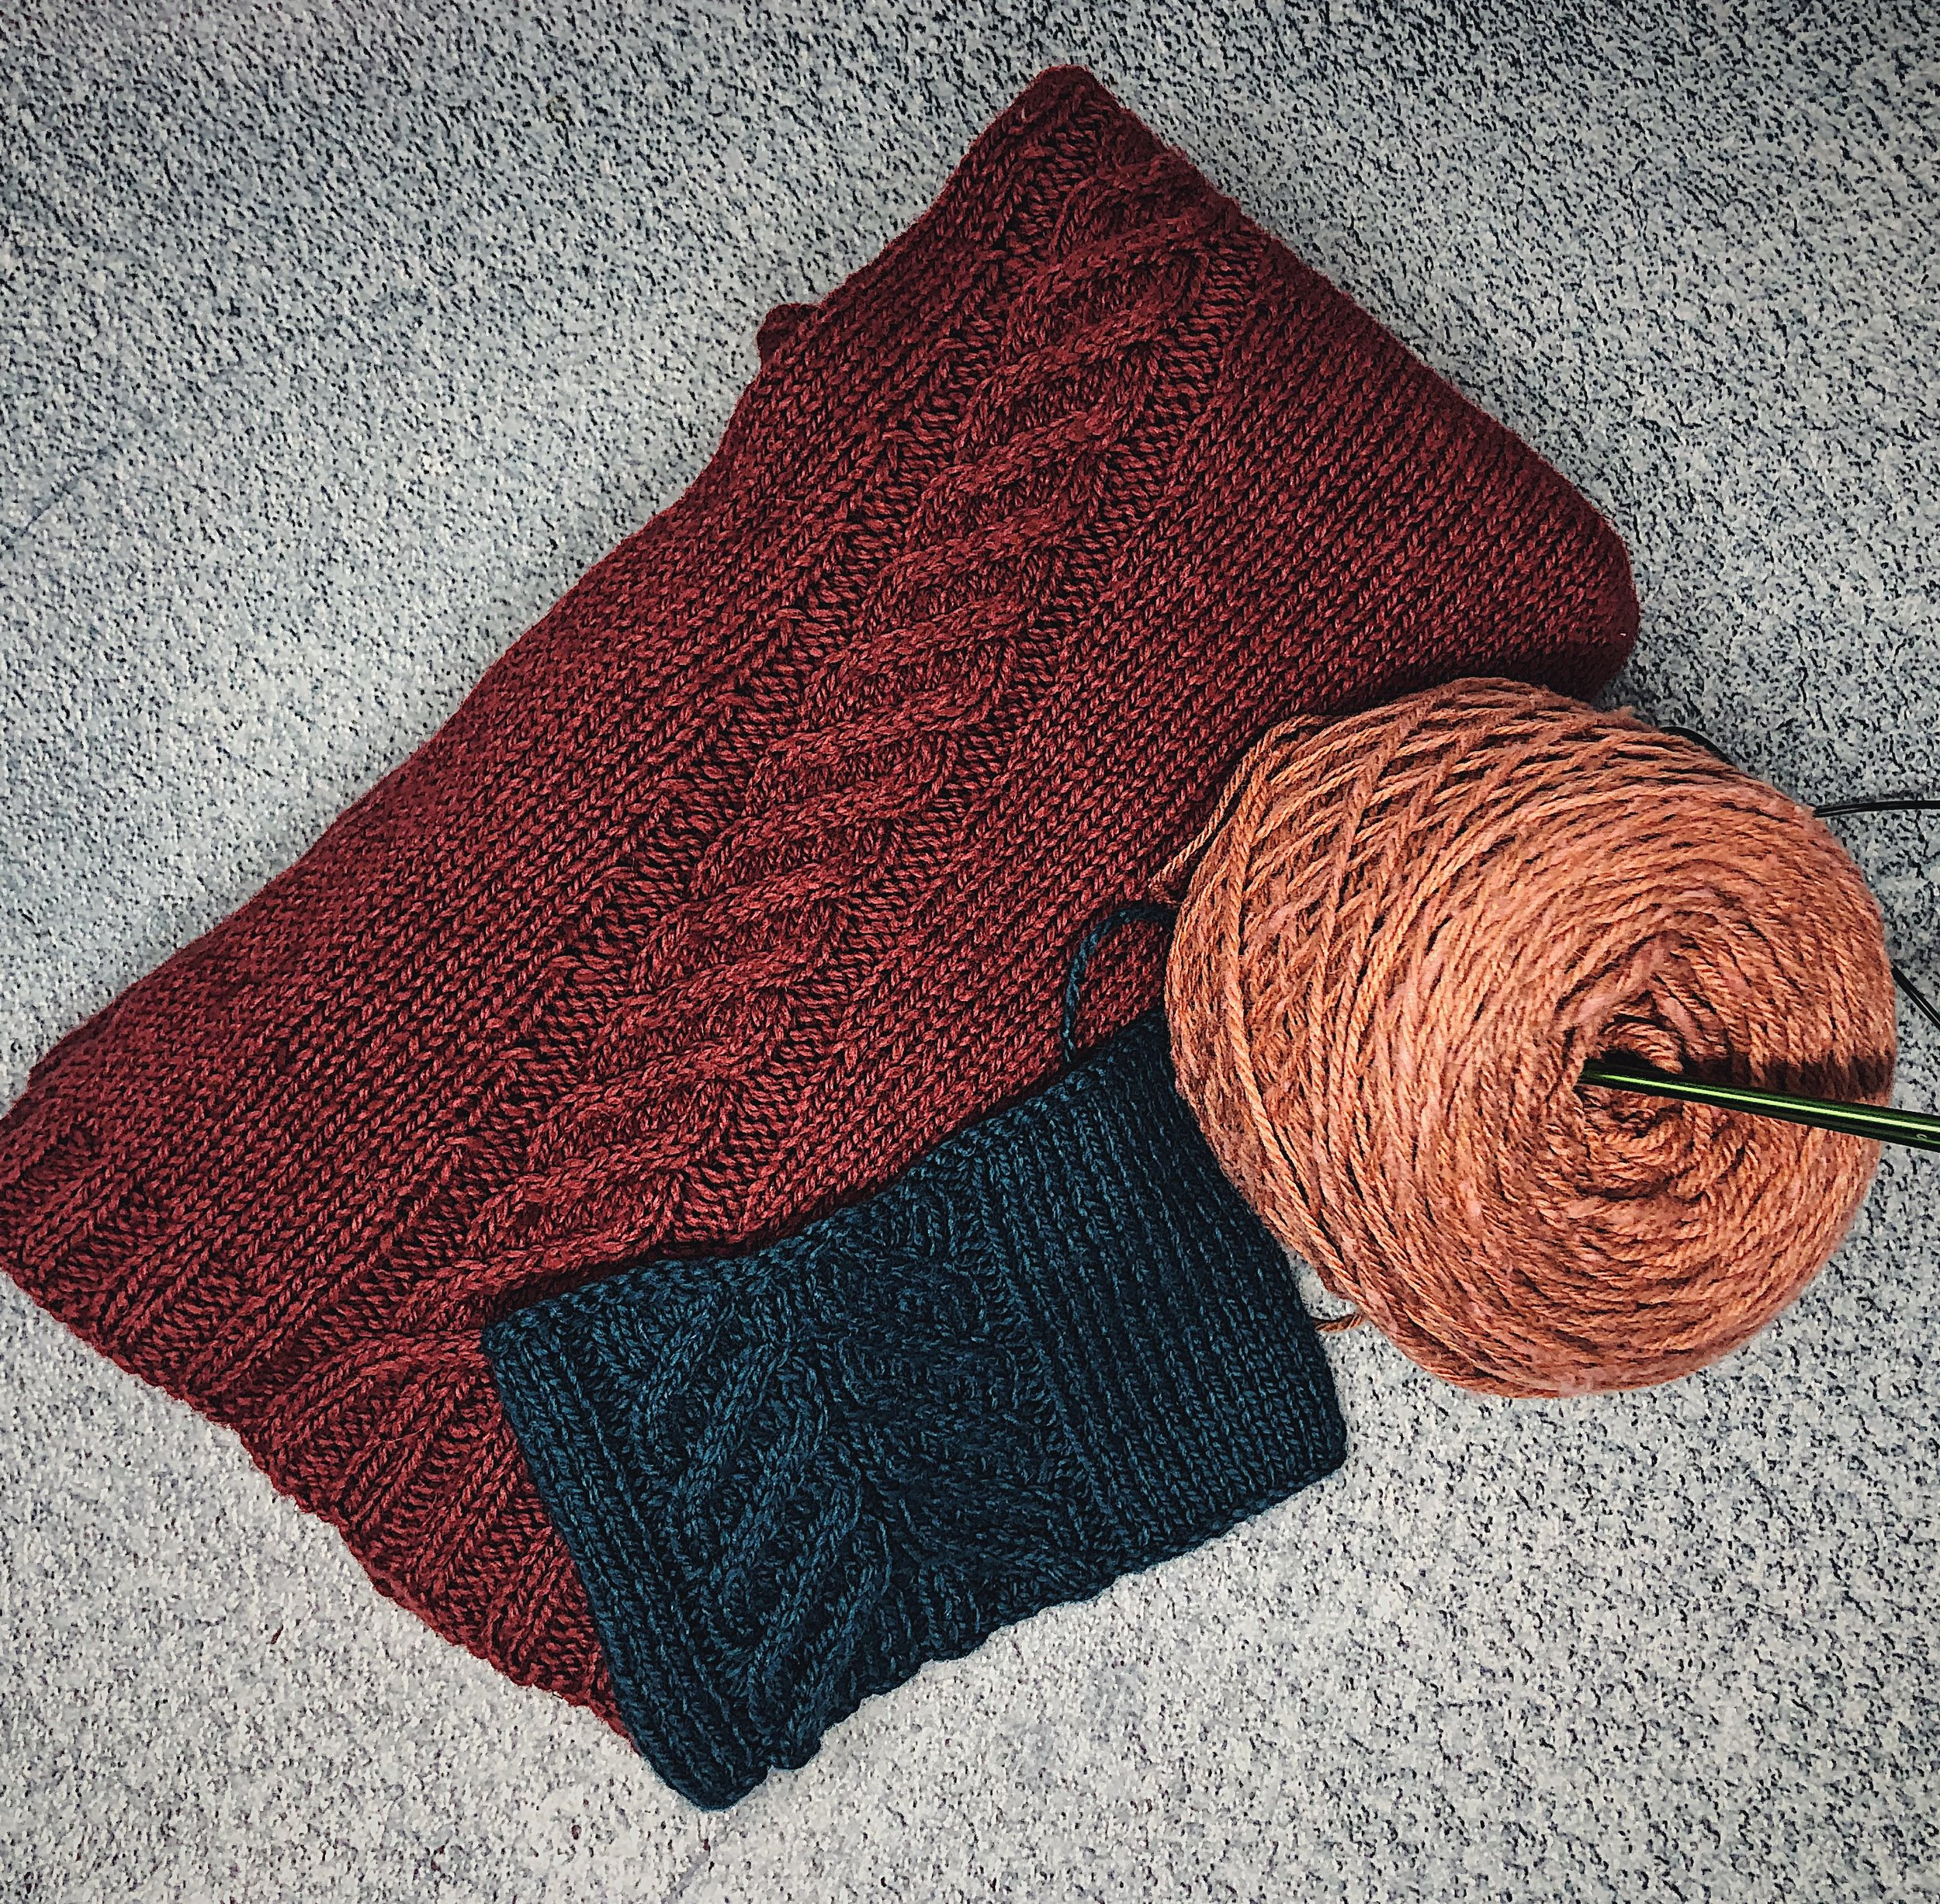 My OG Mapleshade sample and swatch, and my readily-caked Solstice for my KAL version.